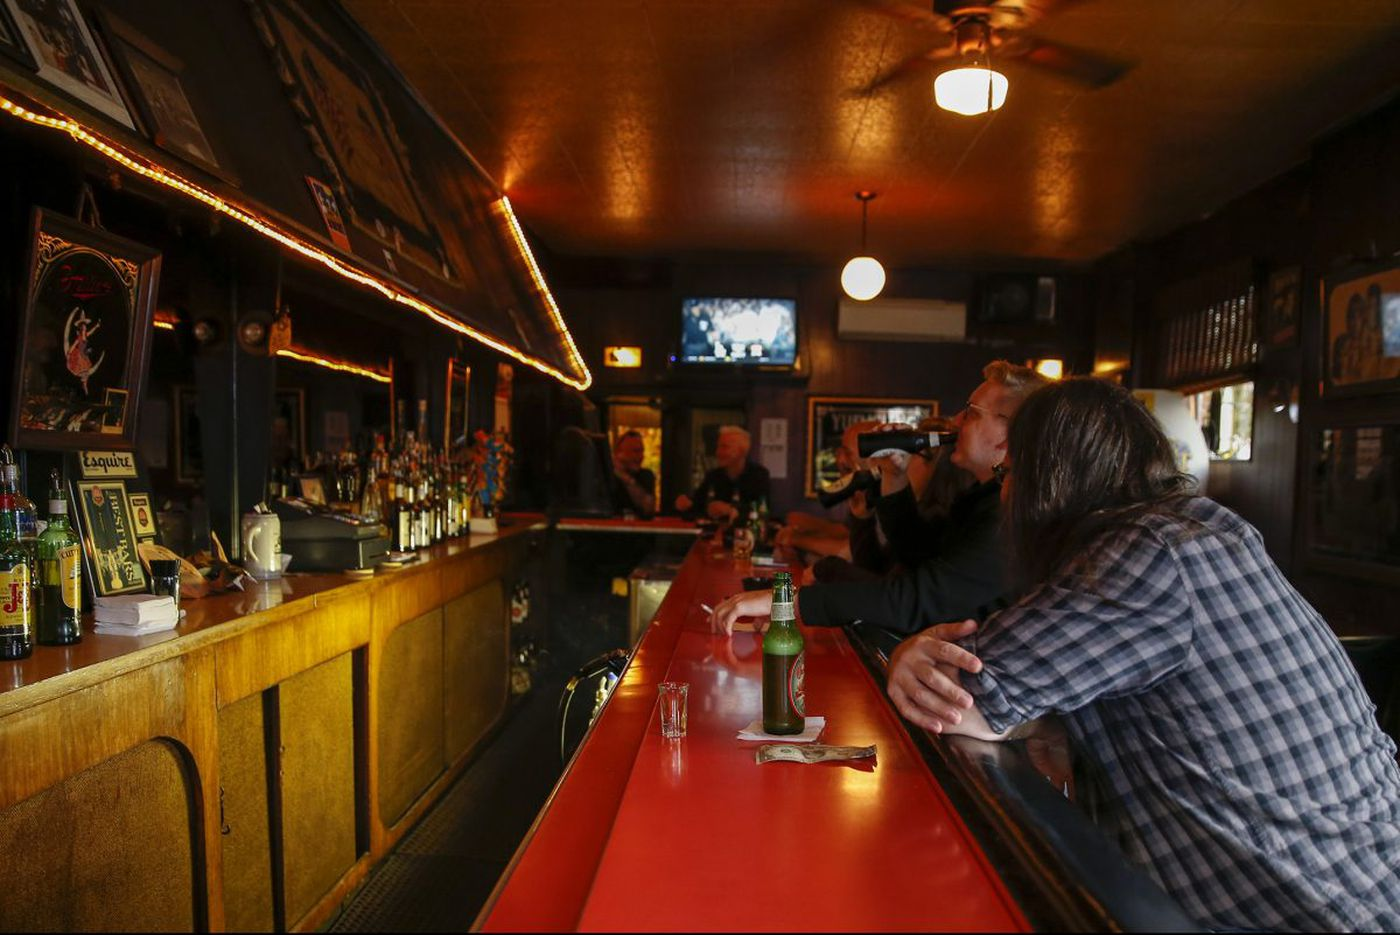 A bartender or a mob underboss? Untangling Skinny Razor's story at Friendly Lounge